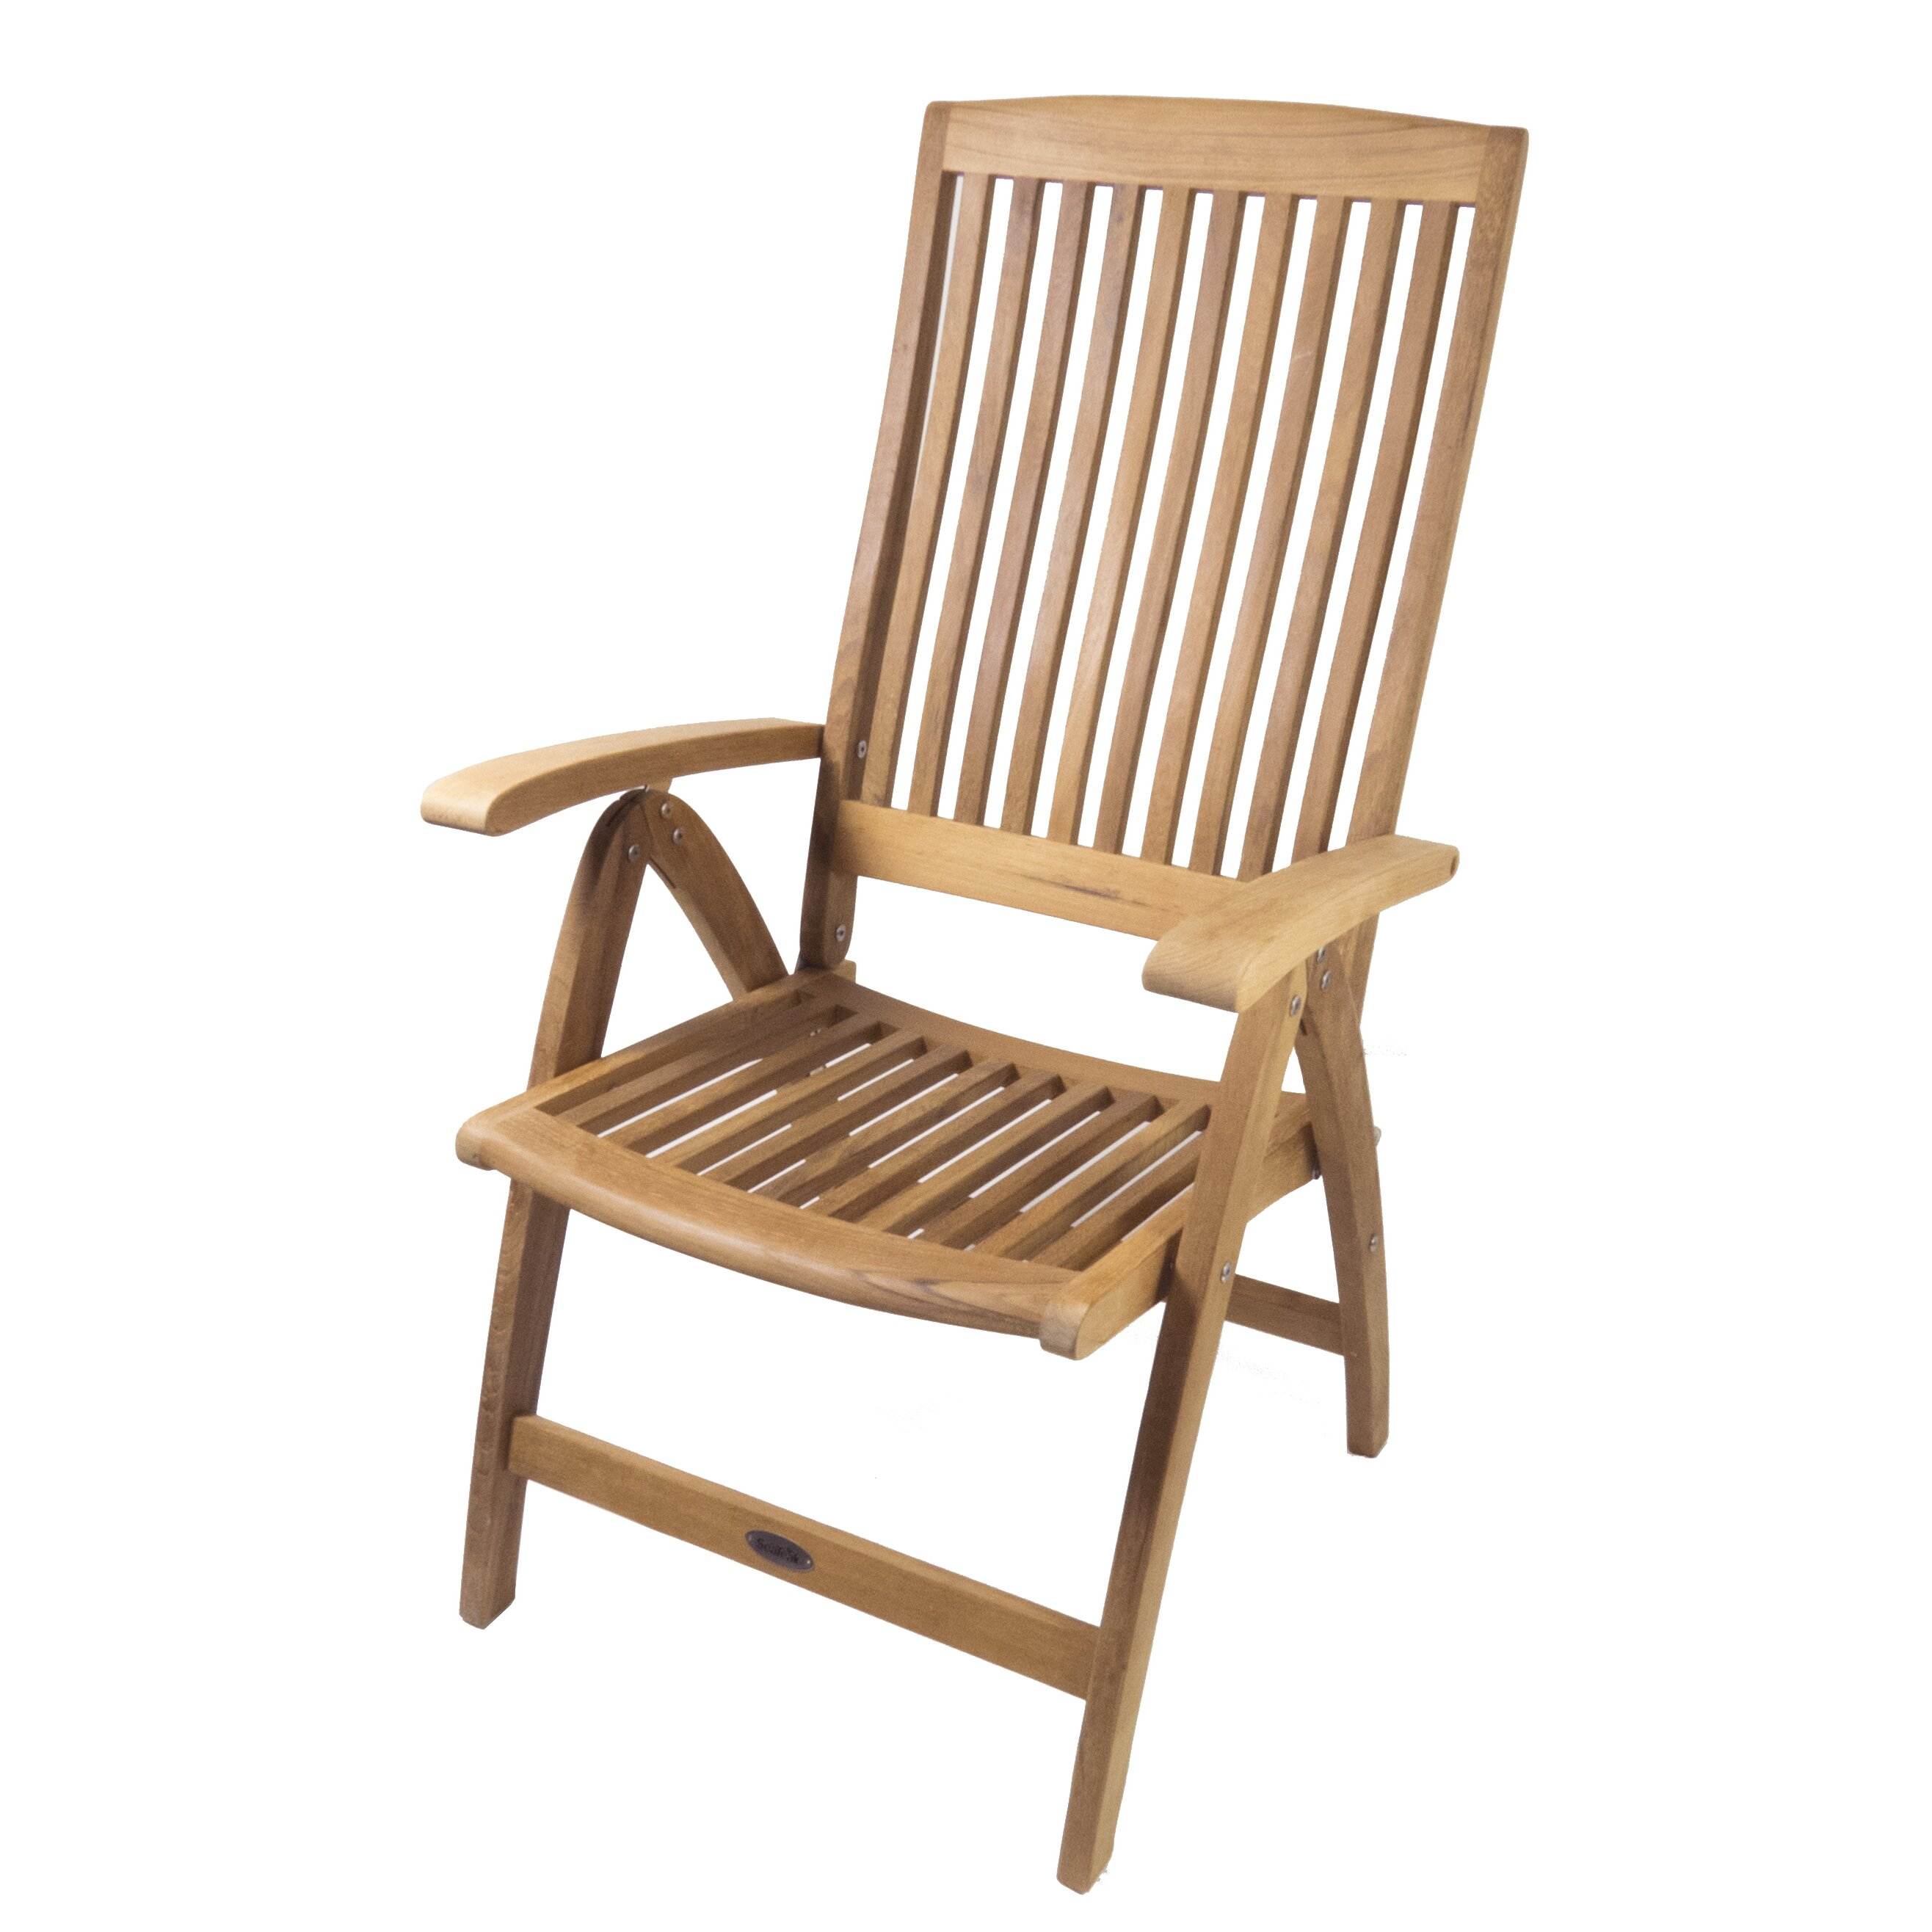 Seateak Weatherly Folding 6 Position Deck Armchair